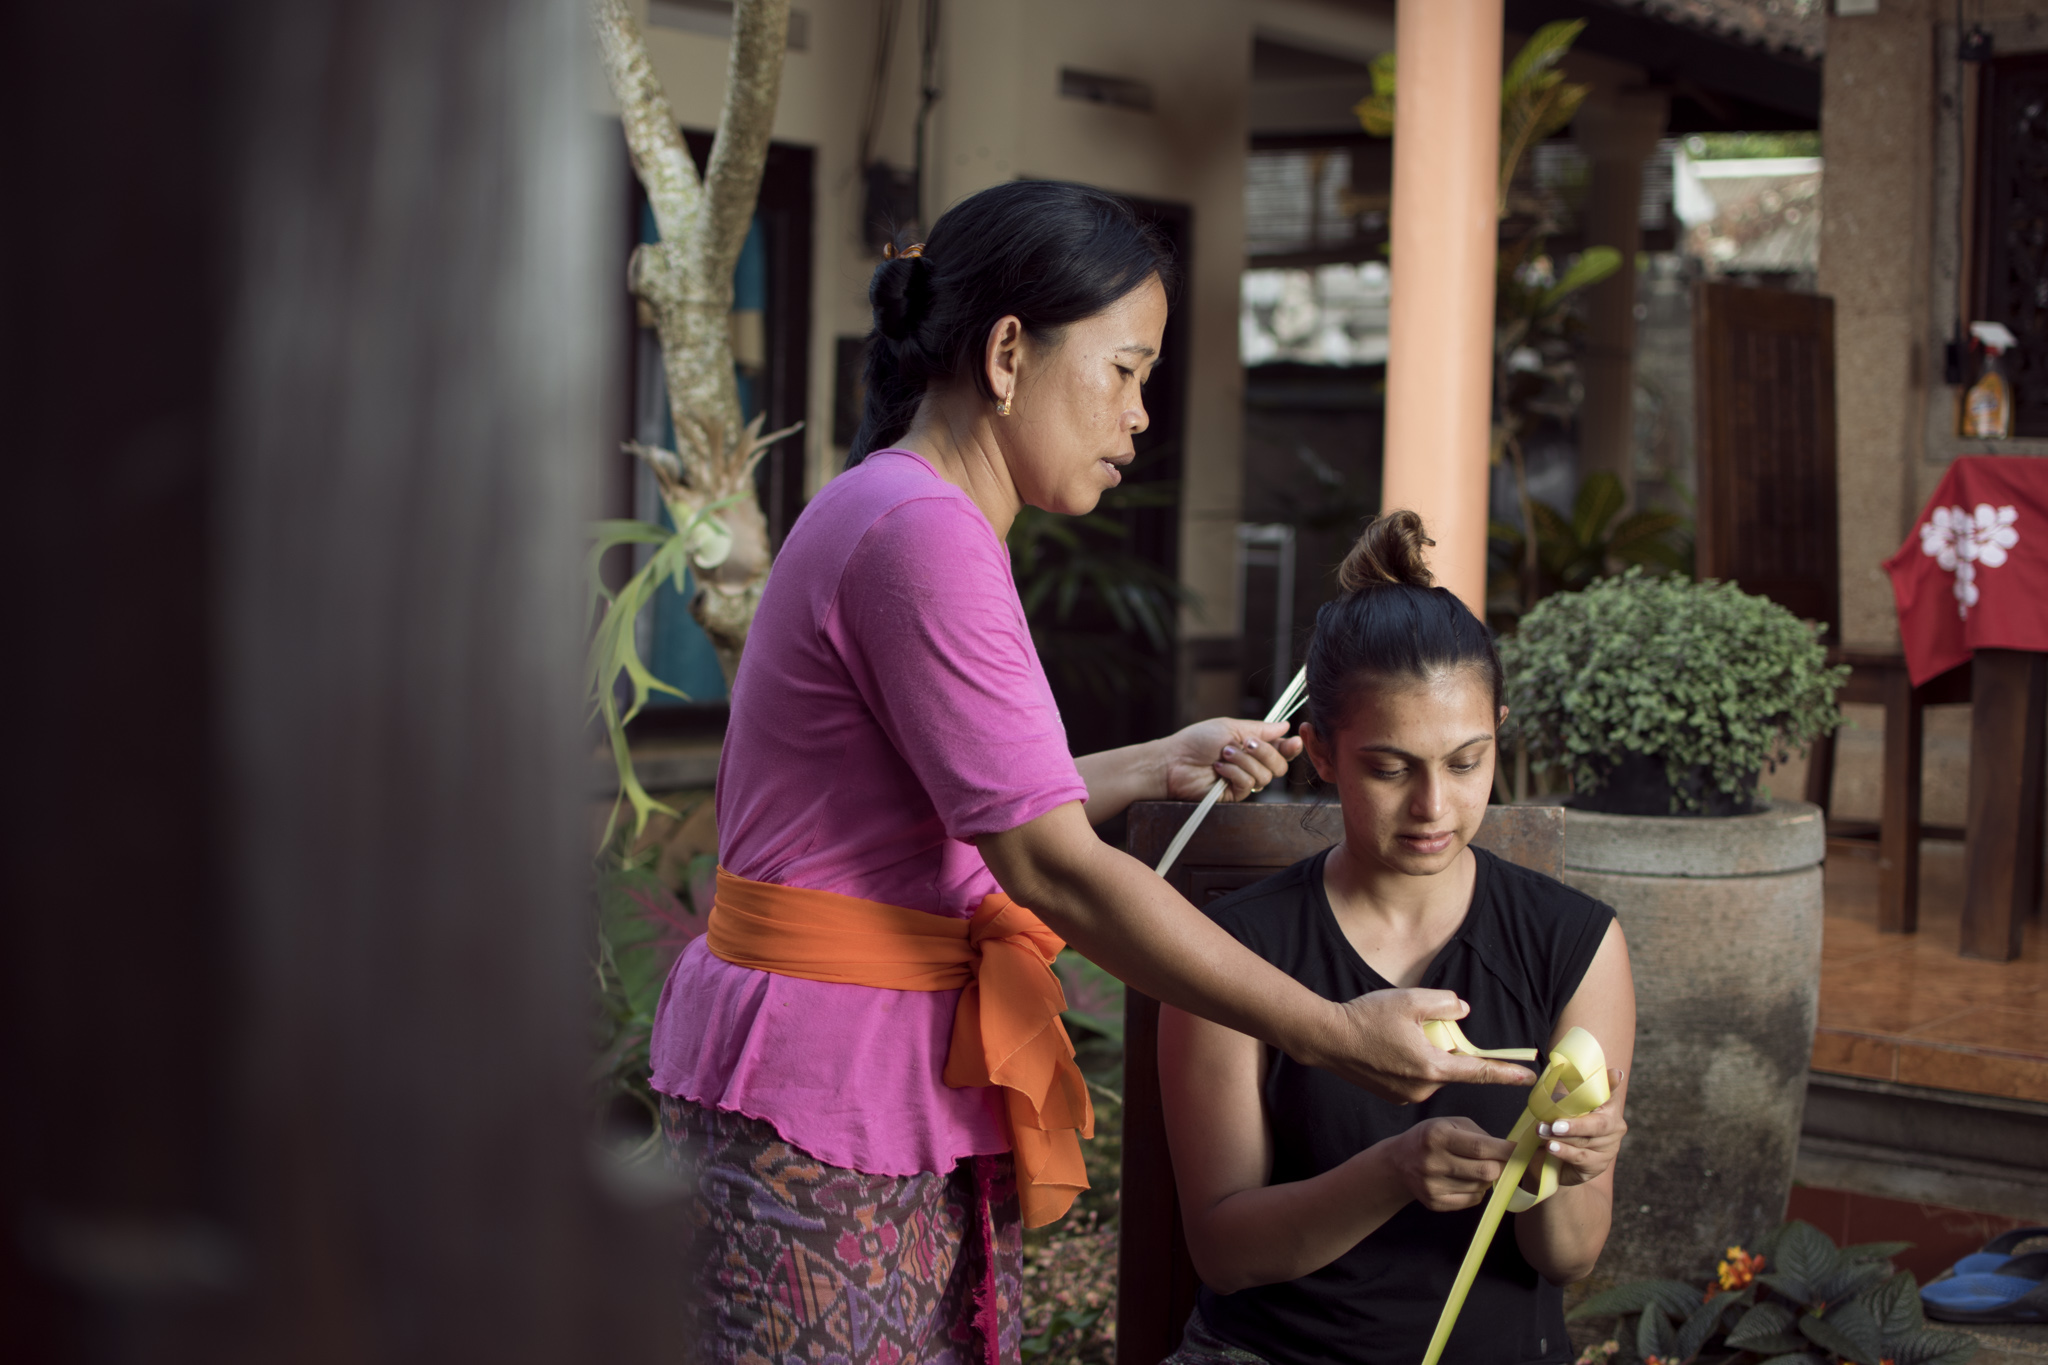 Nyoman, the wife of our host, showing us how to prepare 'Canang Sari' a daily offering that Balinese Hindus use to praise and worship the Gods.